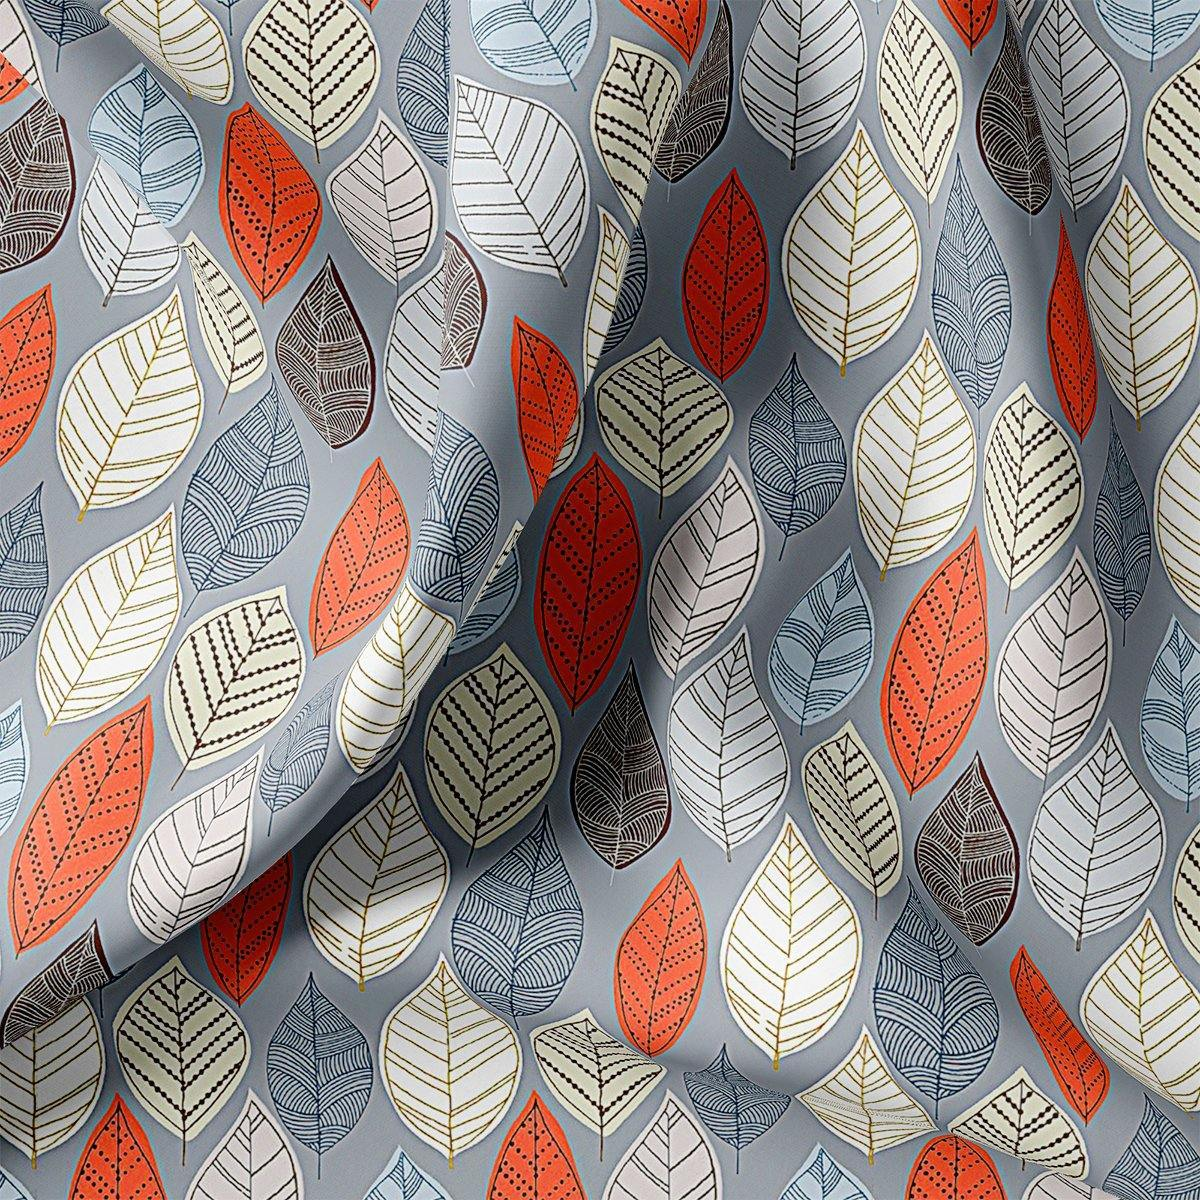 Autumn Leaves Digital Printed Fabric - FAB VOGUE Studio. Shop Fabric @ www.fabvoguestudio.com